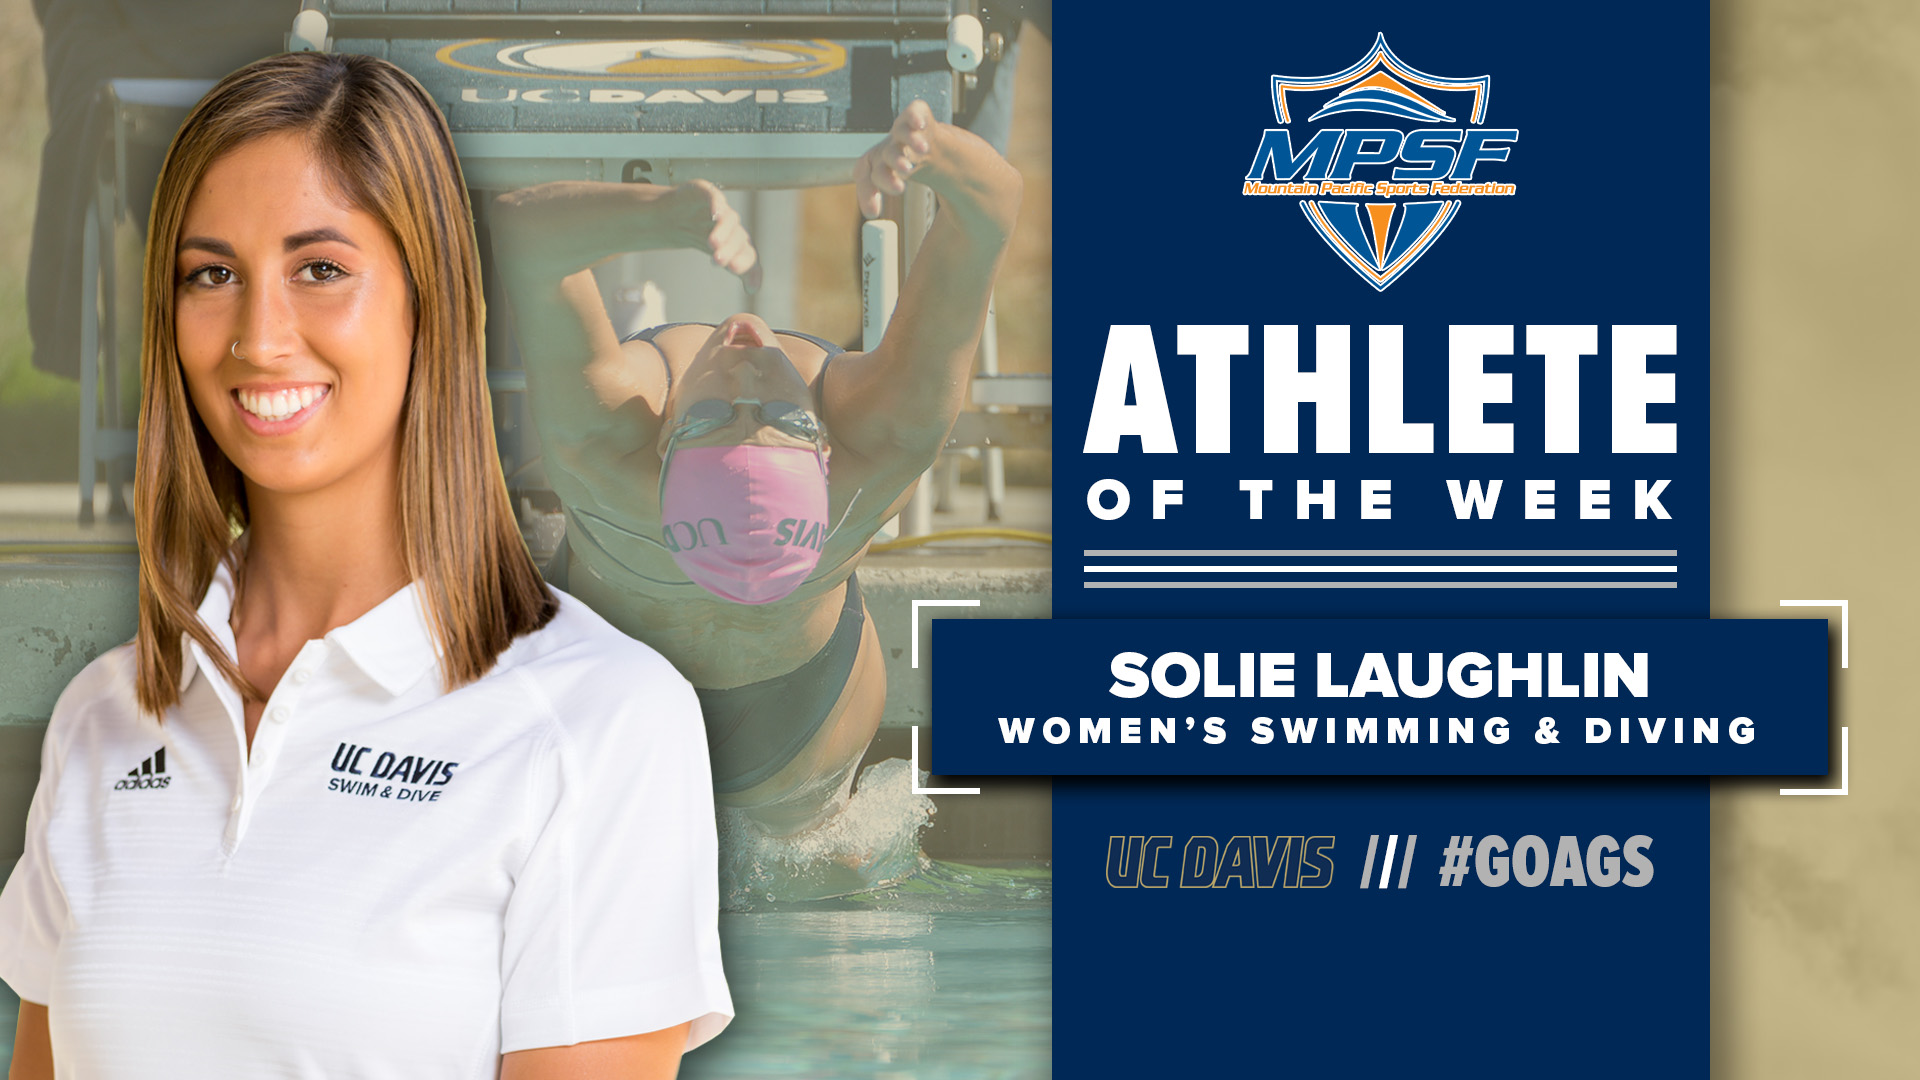 WSD-18-19-Laughlin MPSF Athlete of the Week Graphic